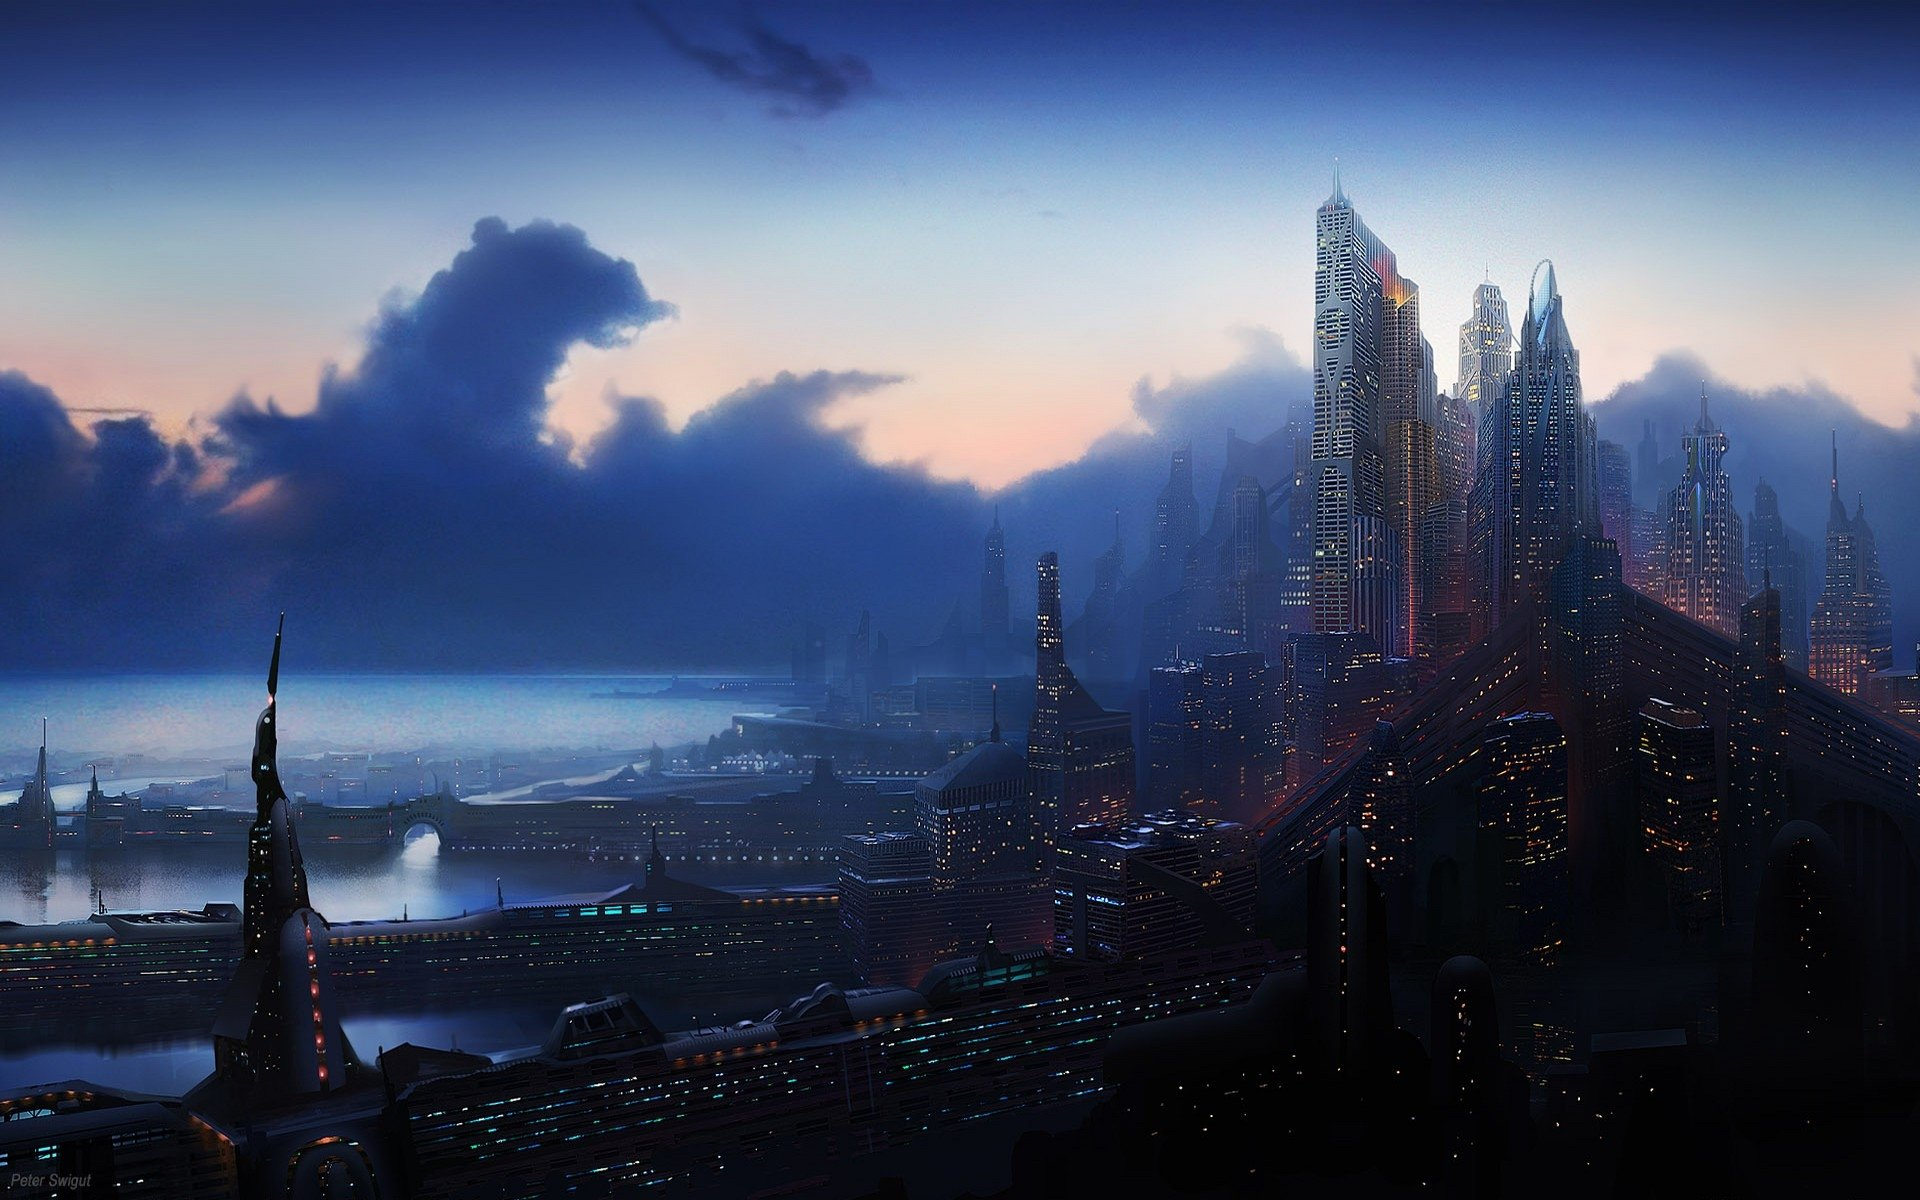 Sci Fi - City  CGI Sci Fi Cityscape Technology Future Coastline Ocean Light Sunset Wallpaper